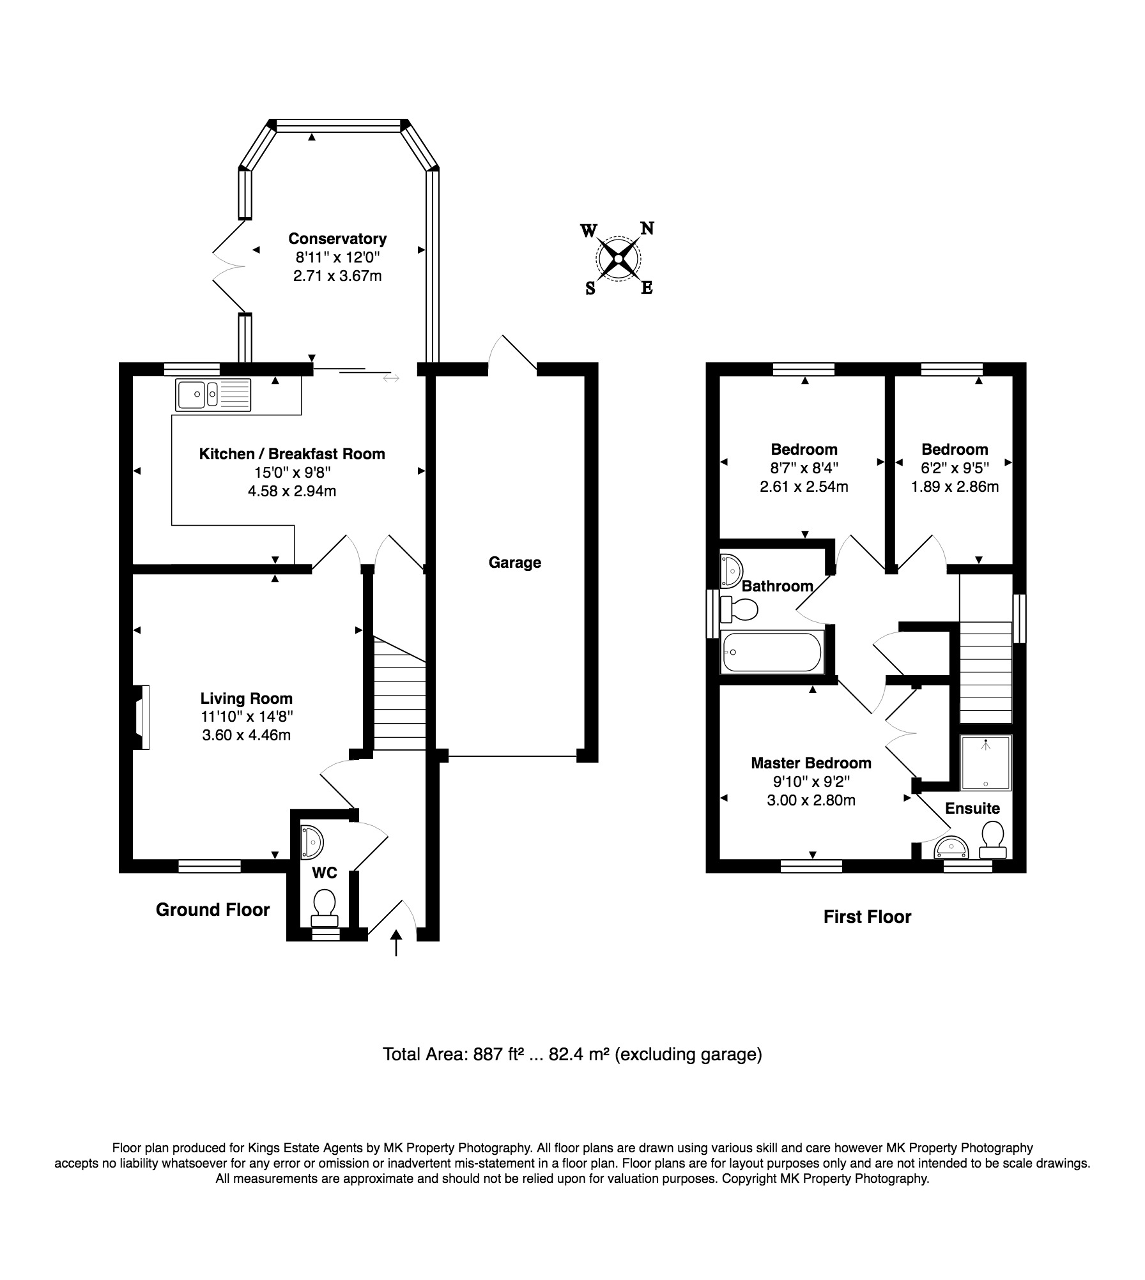 Floorplan for Emmett Close, Emerson Valley, Milton Keynes, Buckinghamshire, MK4 2DY